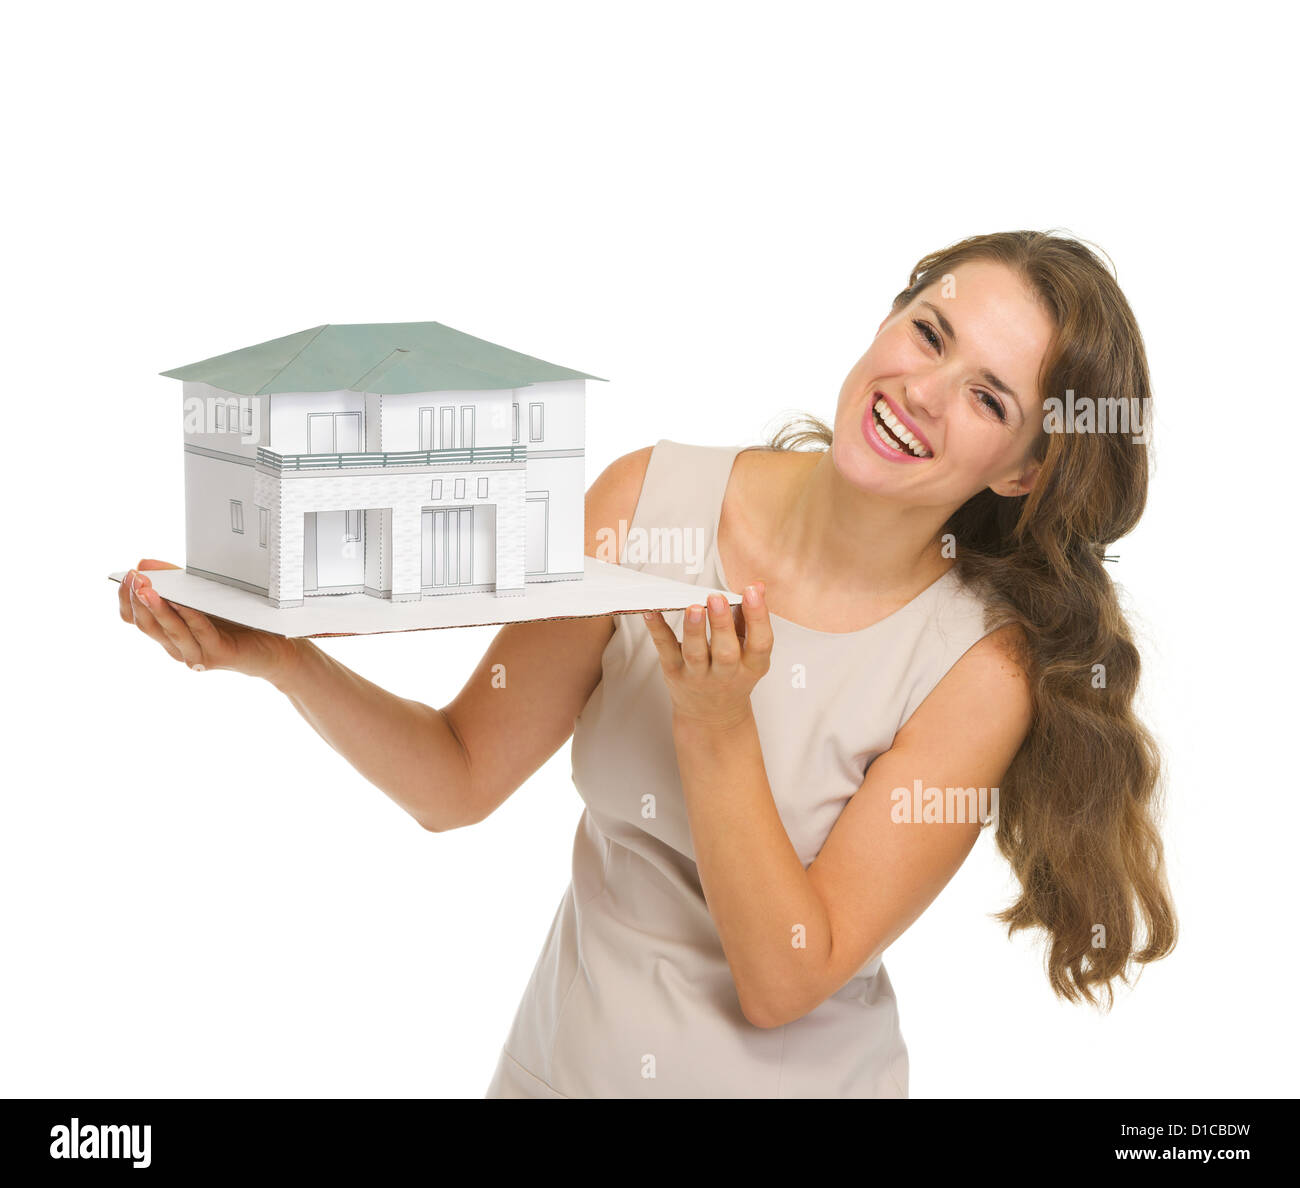 Smiling woman landlord with scale model of house - Stock Image